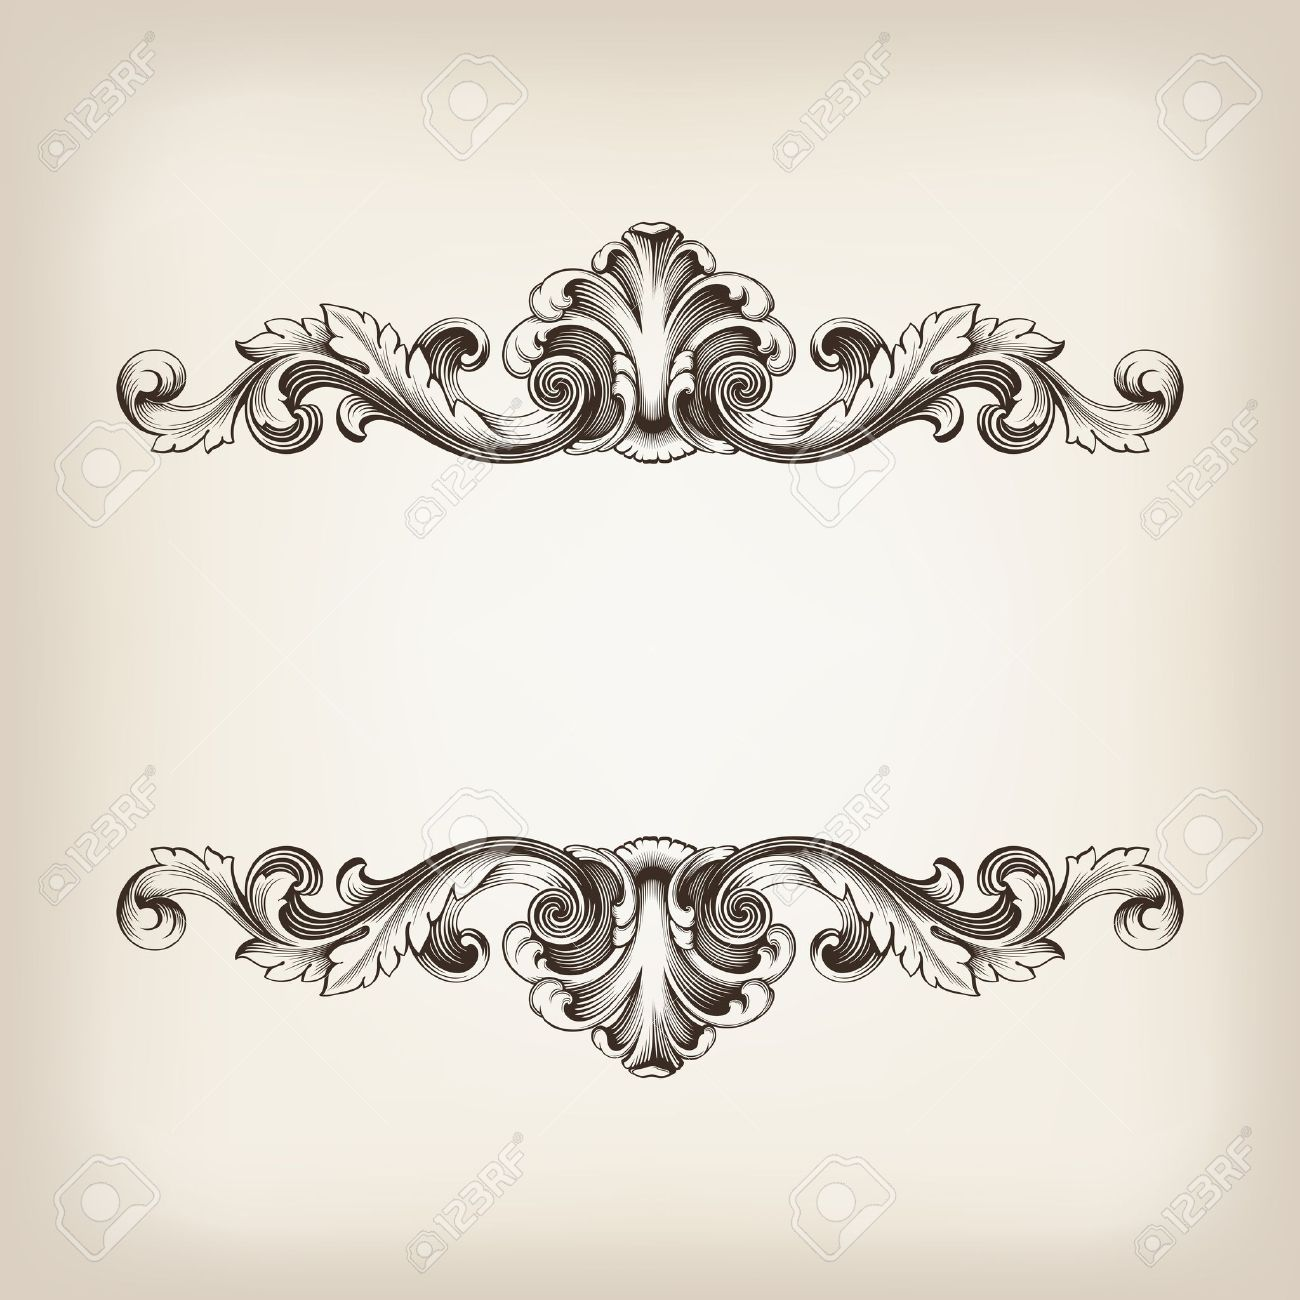 vintage border frame filigree engraving with retro ornament pattern in antique baroque style ornate decorative antique calligraphy design - 17117031